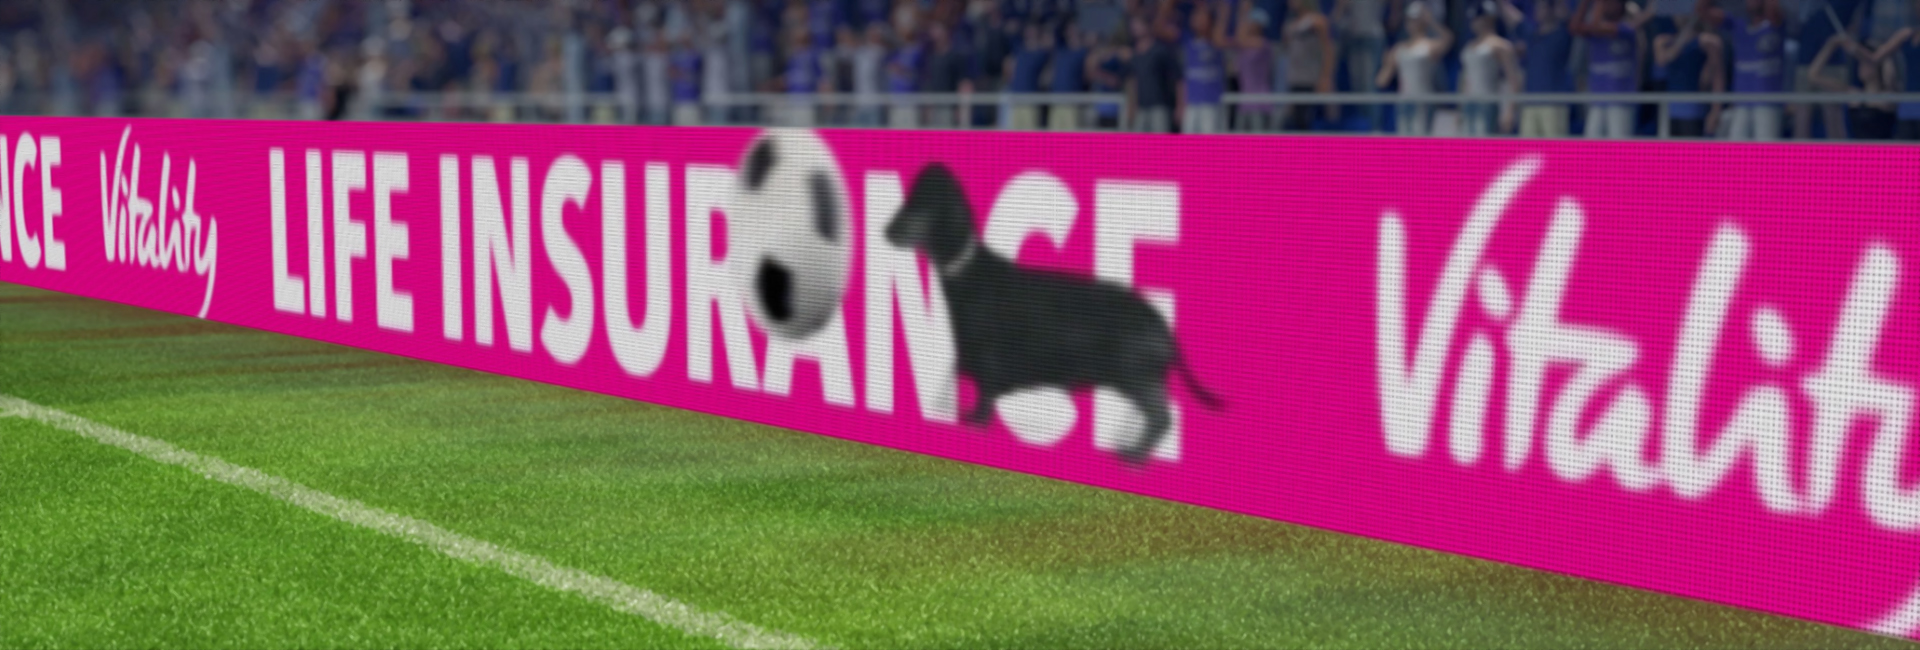 Football advertising just went virtual – a new horizon in targeted advertising opens up